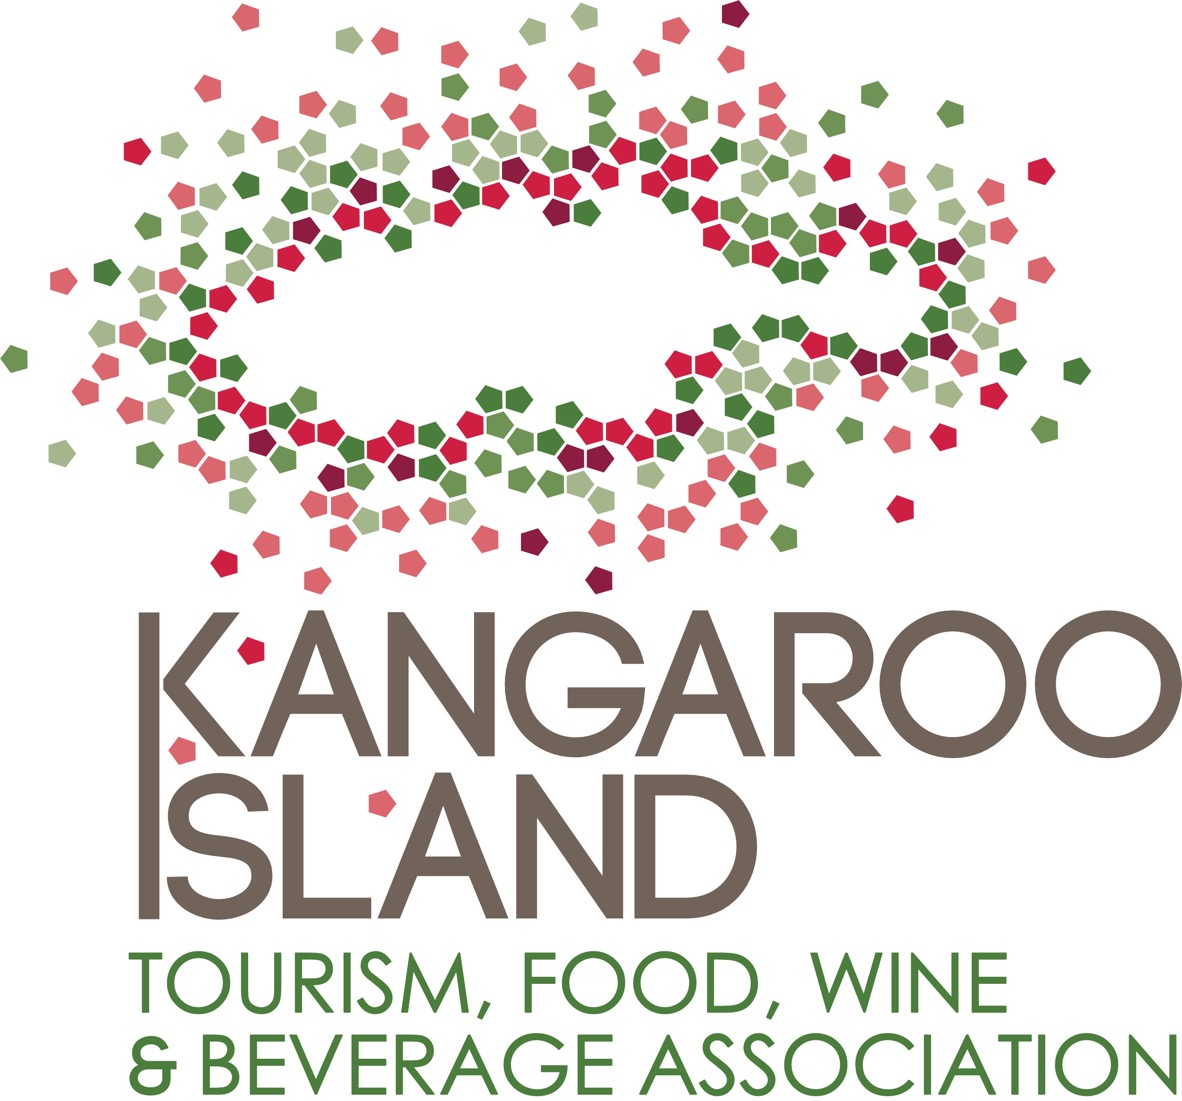 Kangaroo Island Tourism Food Wine and Beverage Association